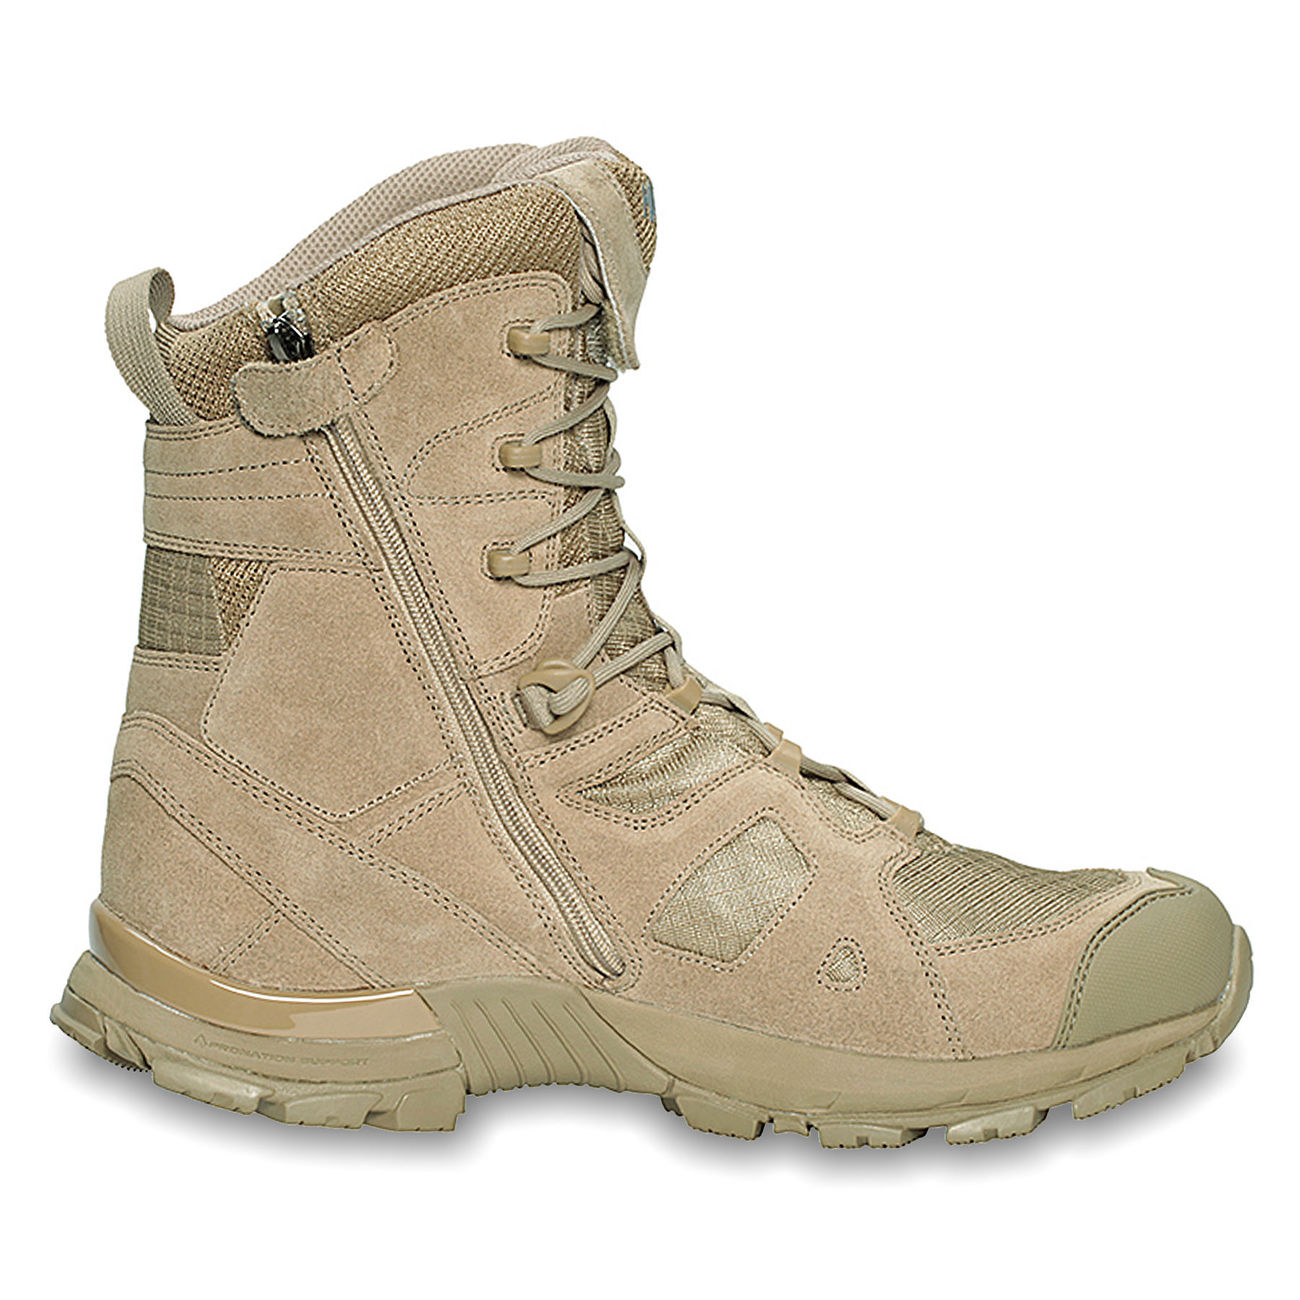 Haix Funktionsstiefel Black Eagle Athletic 11 high desert 3